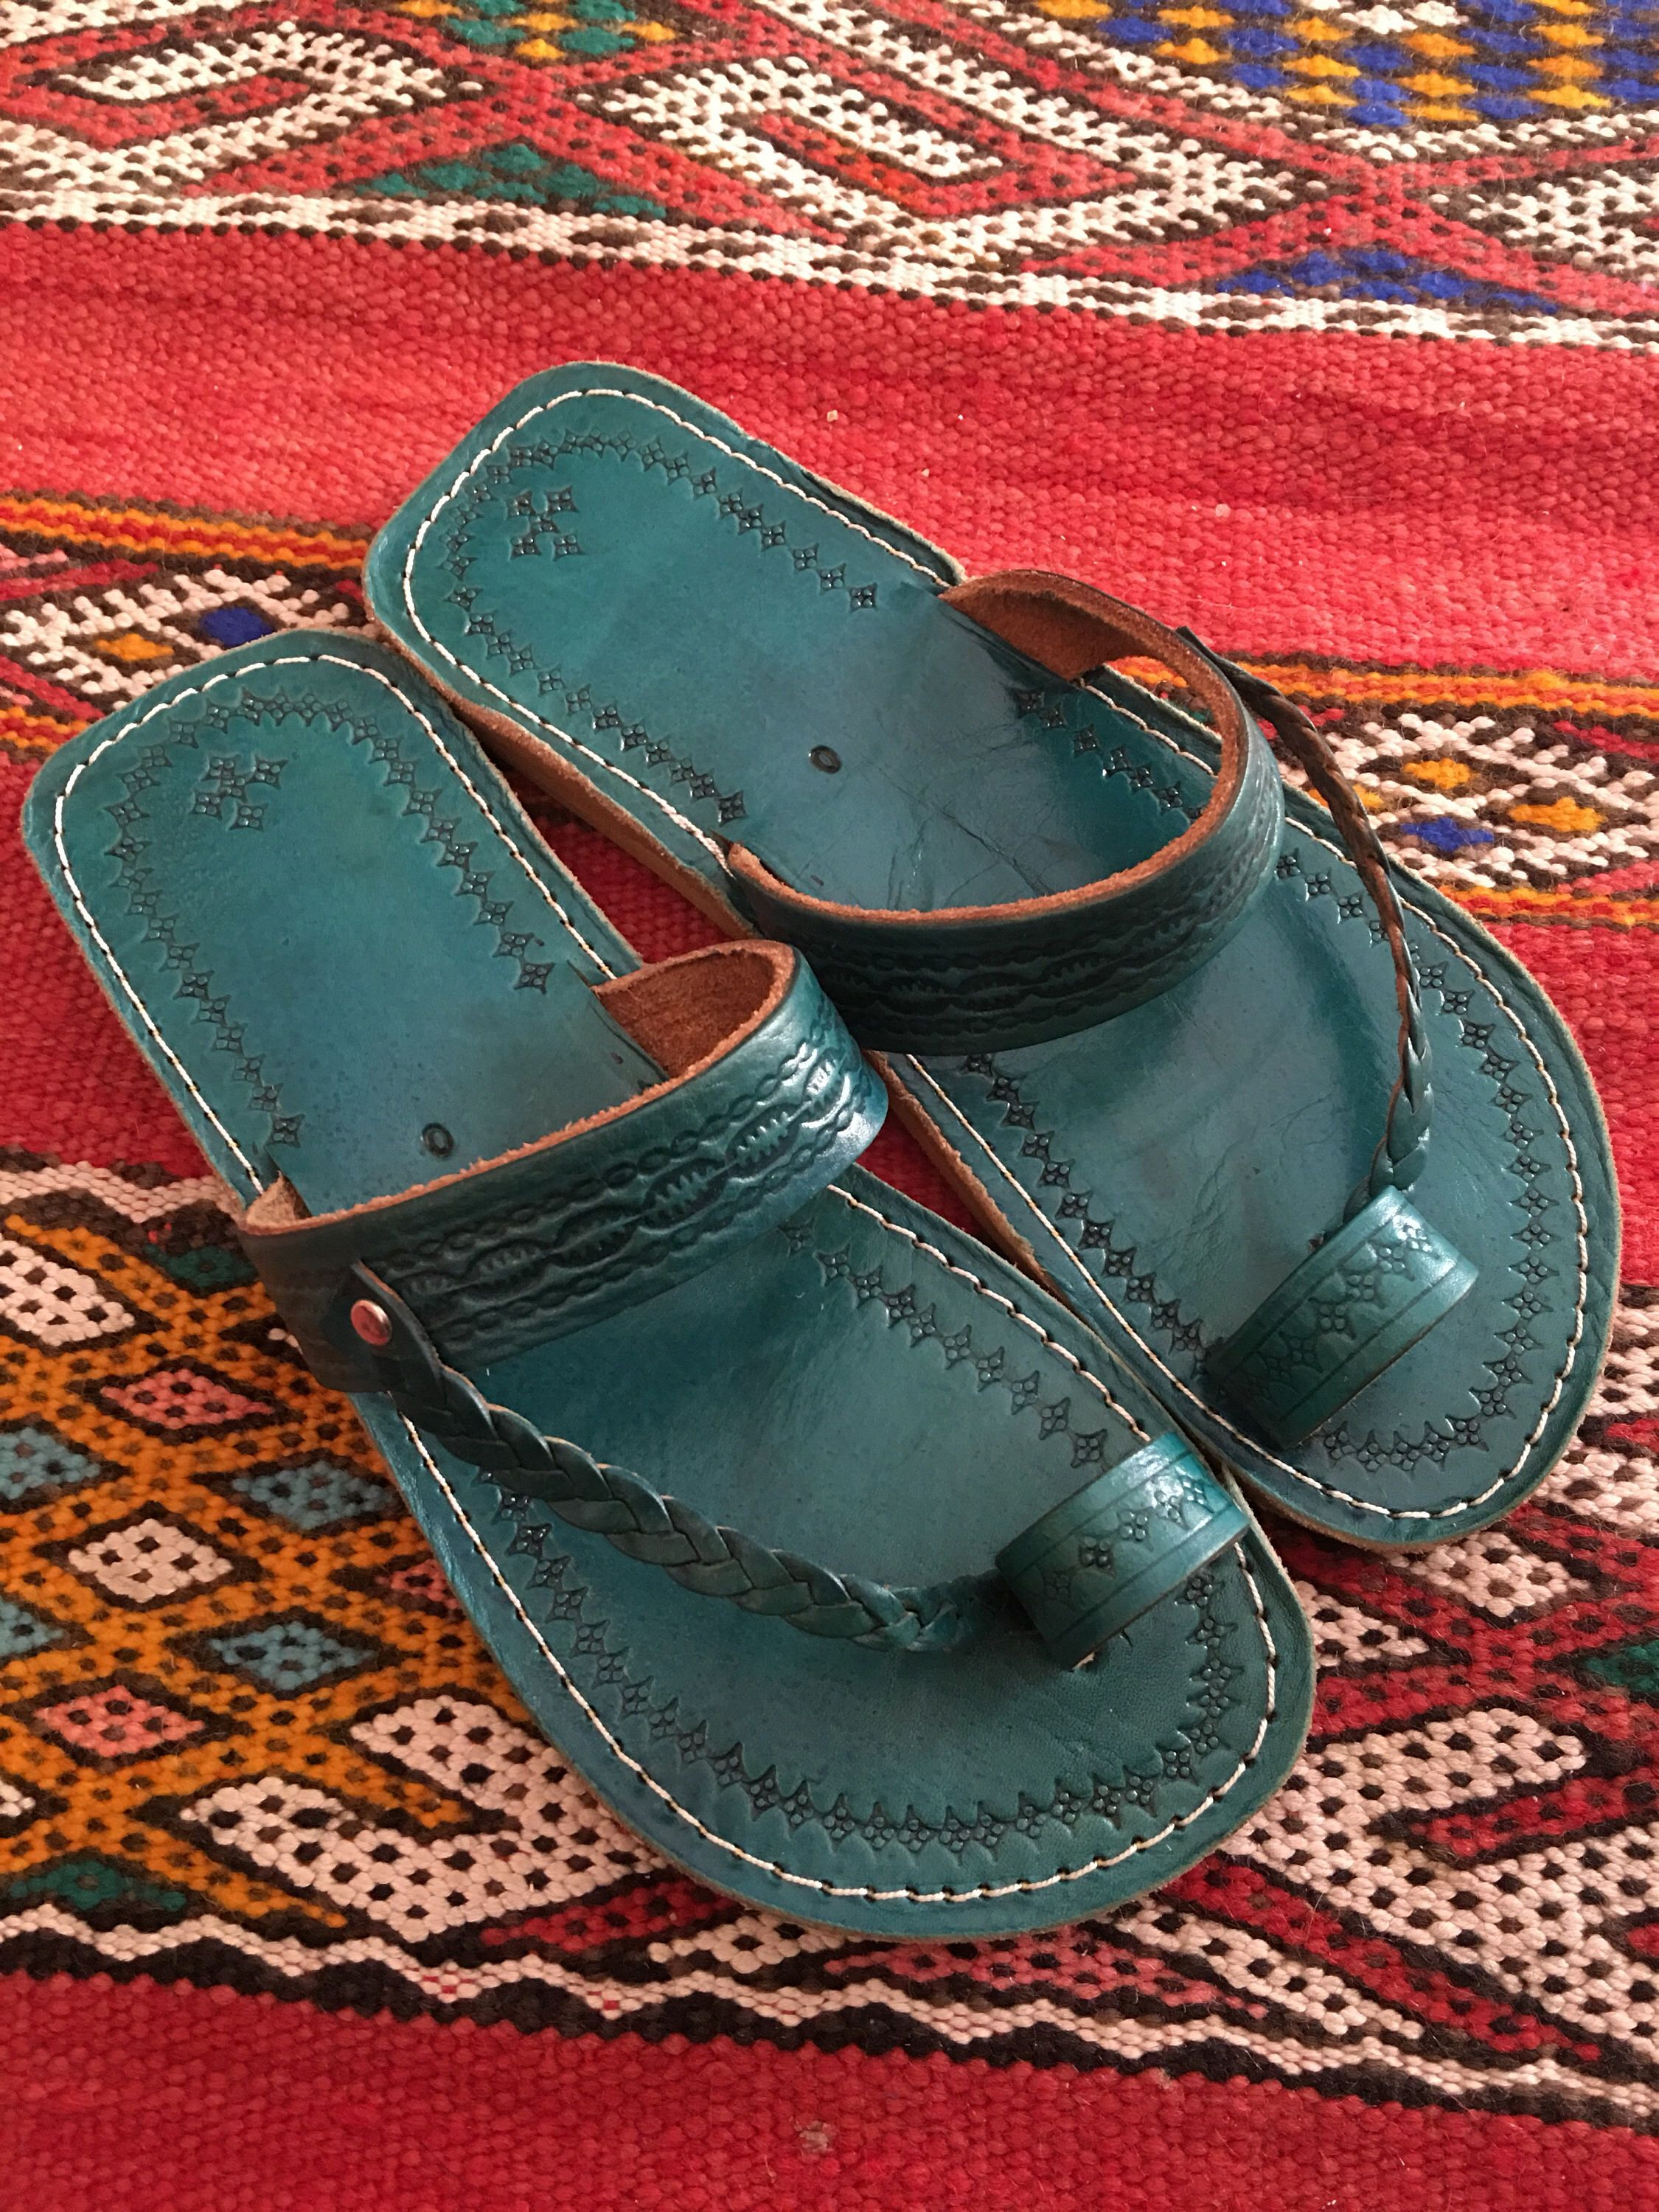 d6944ba537cf5 Pin by MarocDecorCo on Etsy Shop | Leather sandals, Sandals, Braided ...